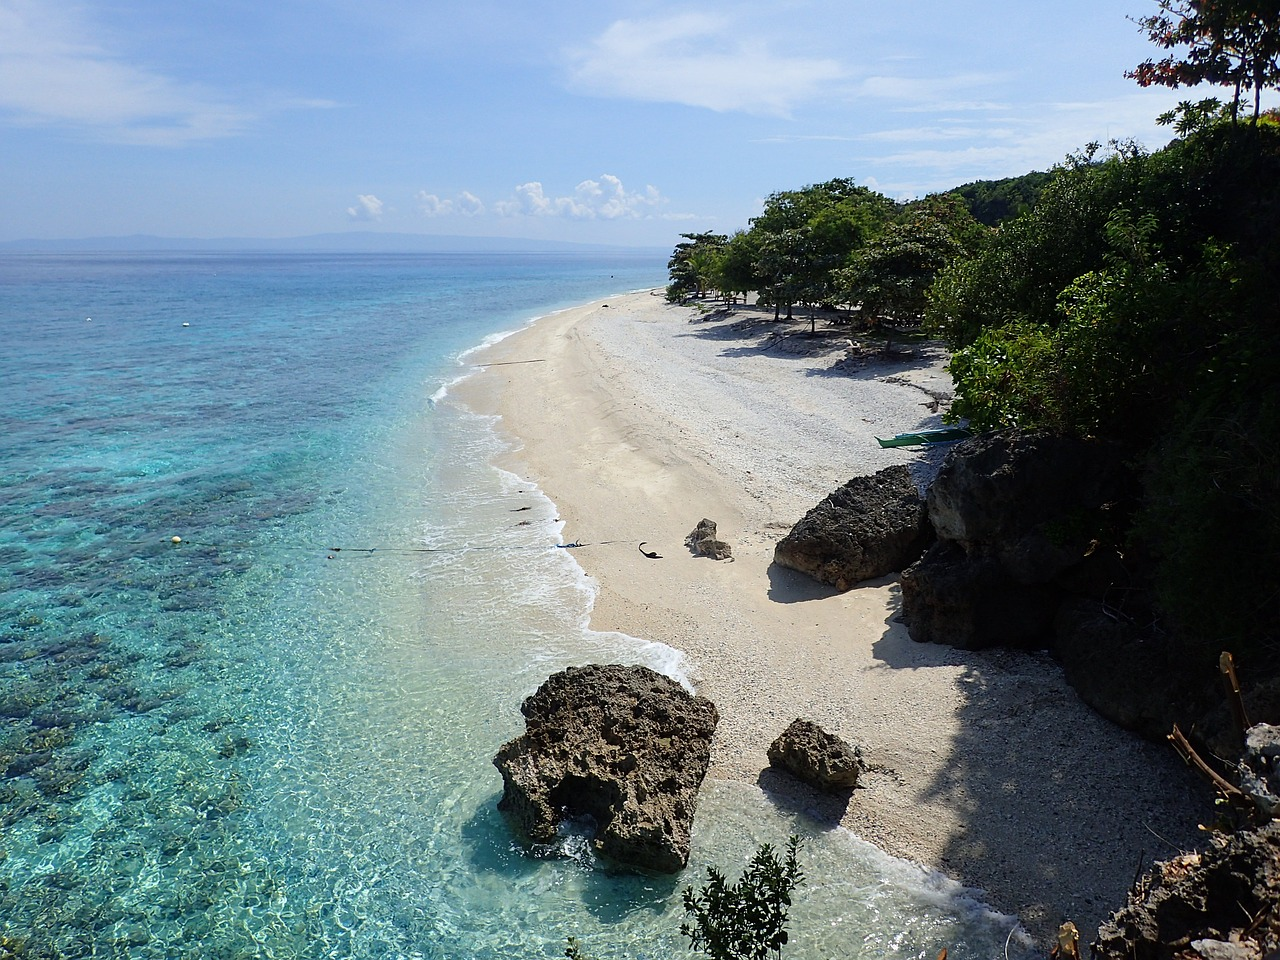 Cebu beaches - How to visit Cebu, Philippines on a budget